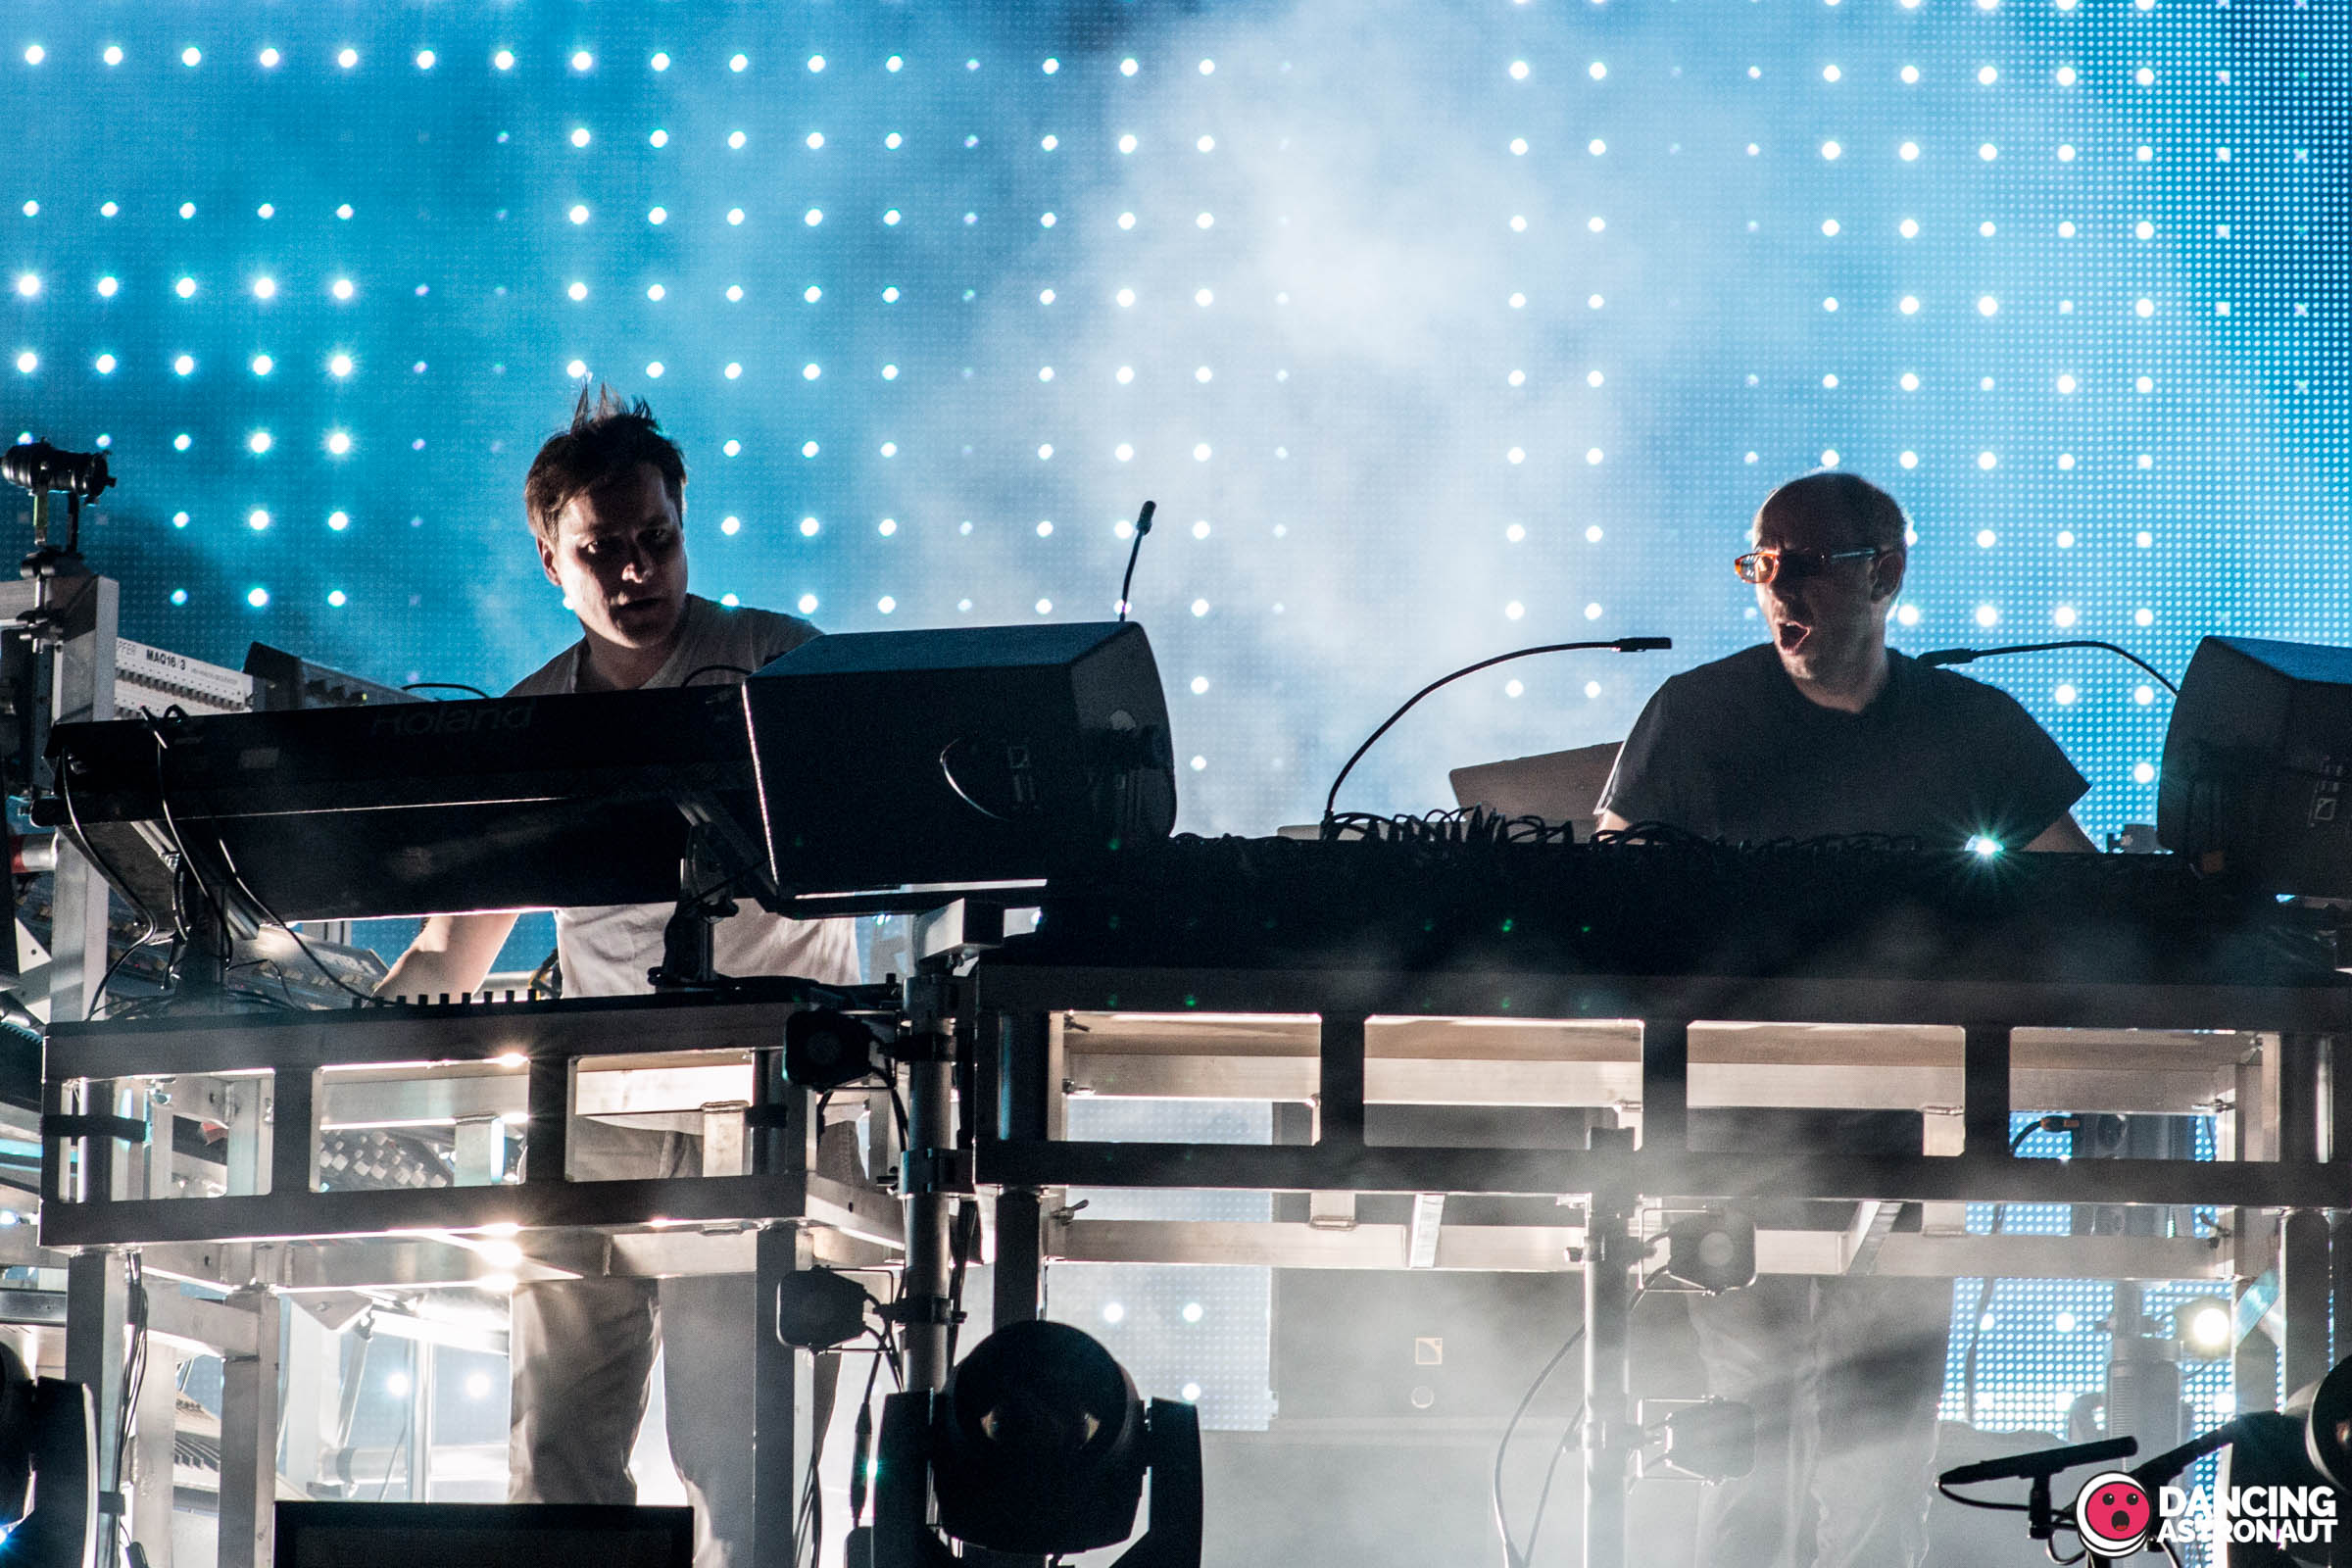 Listen to The Chemical Brothers' triumphant new single, 'C-h-e-m-i-c-a-l'Ultra Europe 2015 Day 1 Chemical Brothers 1